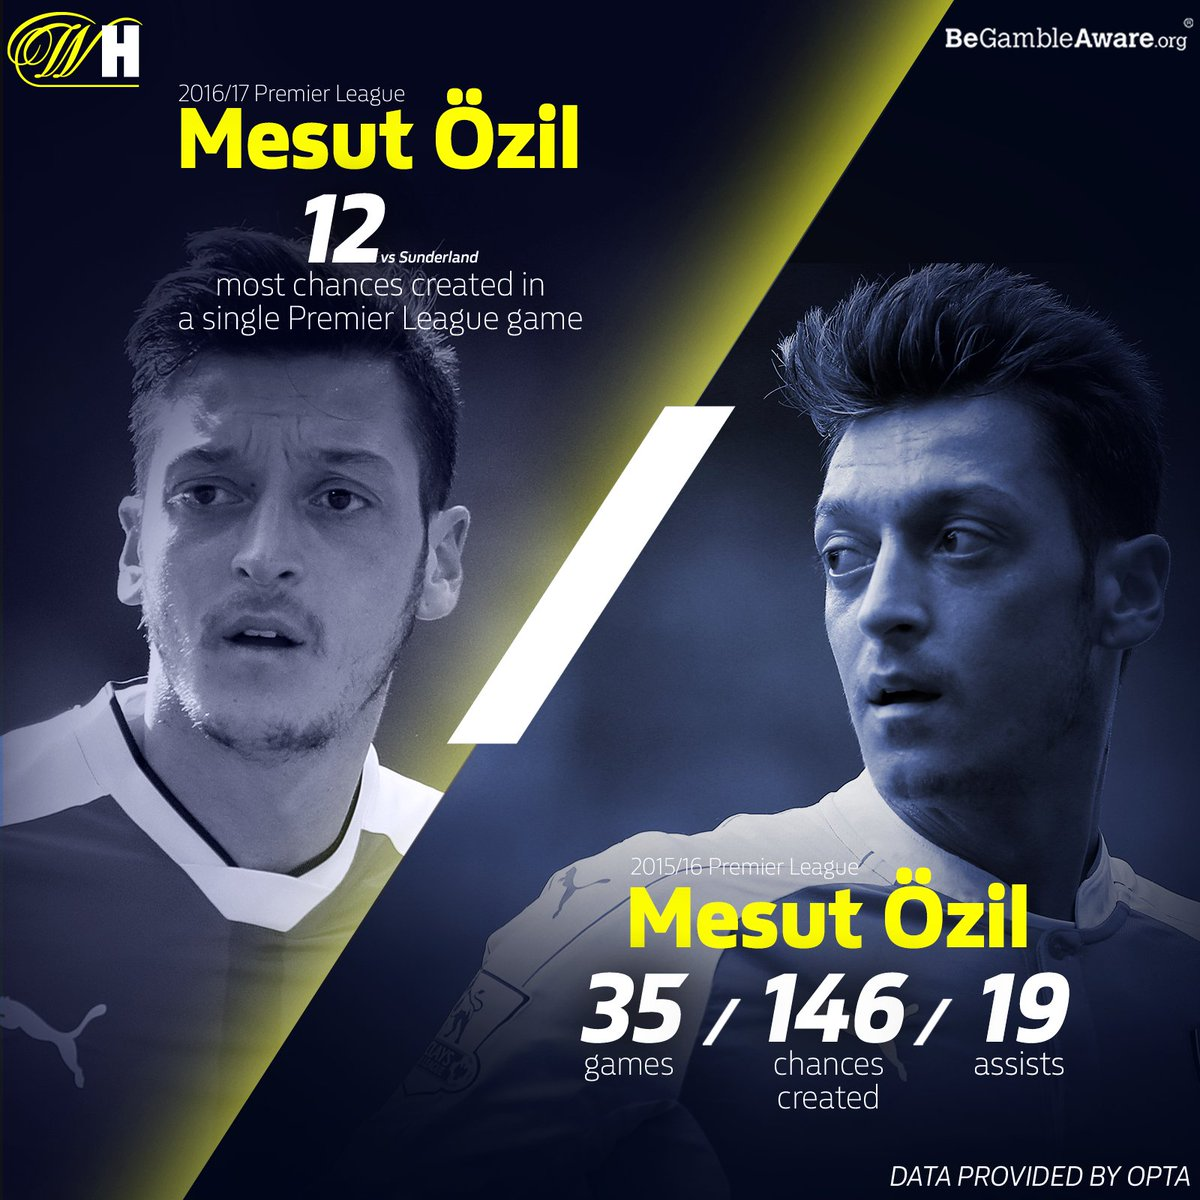 Only Thierry Henry has provided more assists (20) in a single Premier League season than Mesut Özil in 2015/16: • 35 games • 146 chances created • 19 assists In 2016/17, he set the record for most chances created in a single game (12). 〽️